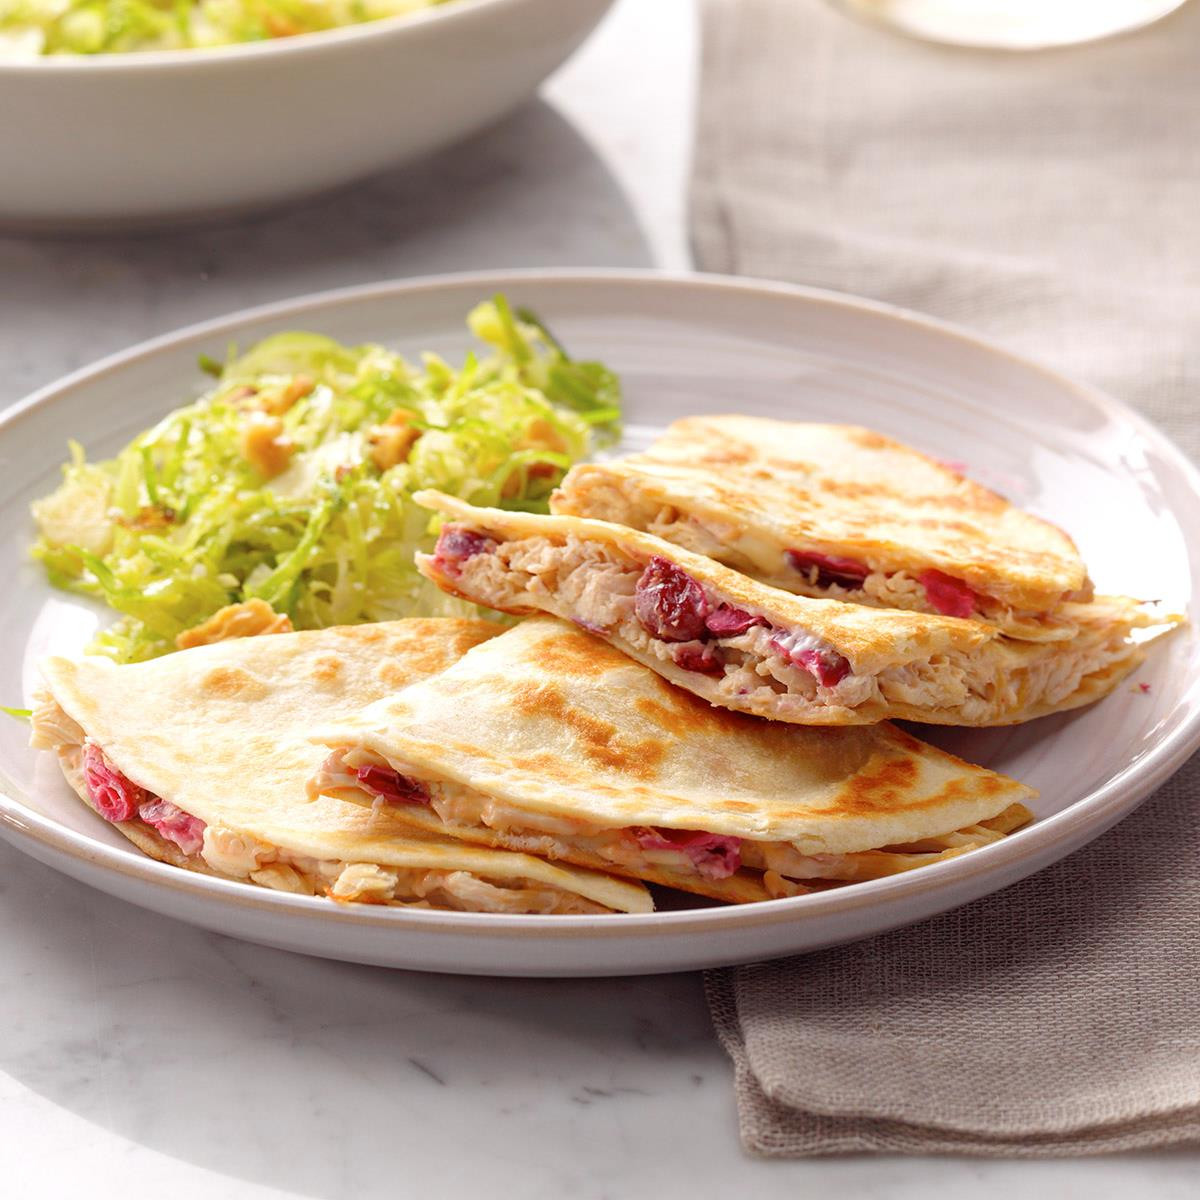 Spicy Thanksgiving Turkey Recipe  Spicy Turkey Quesadillas Recipe